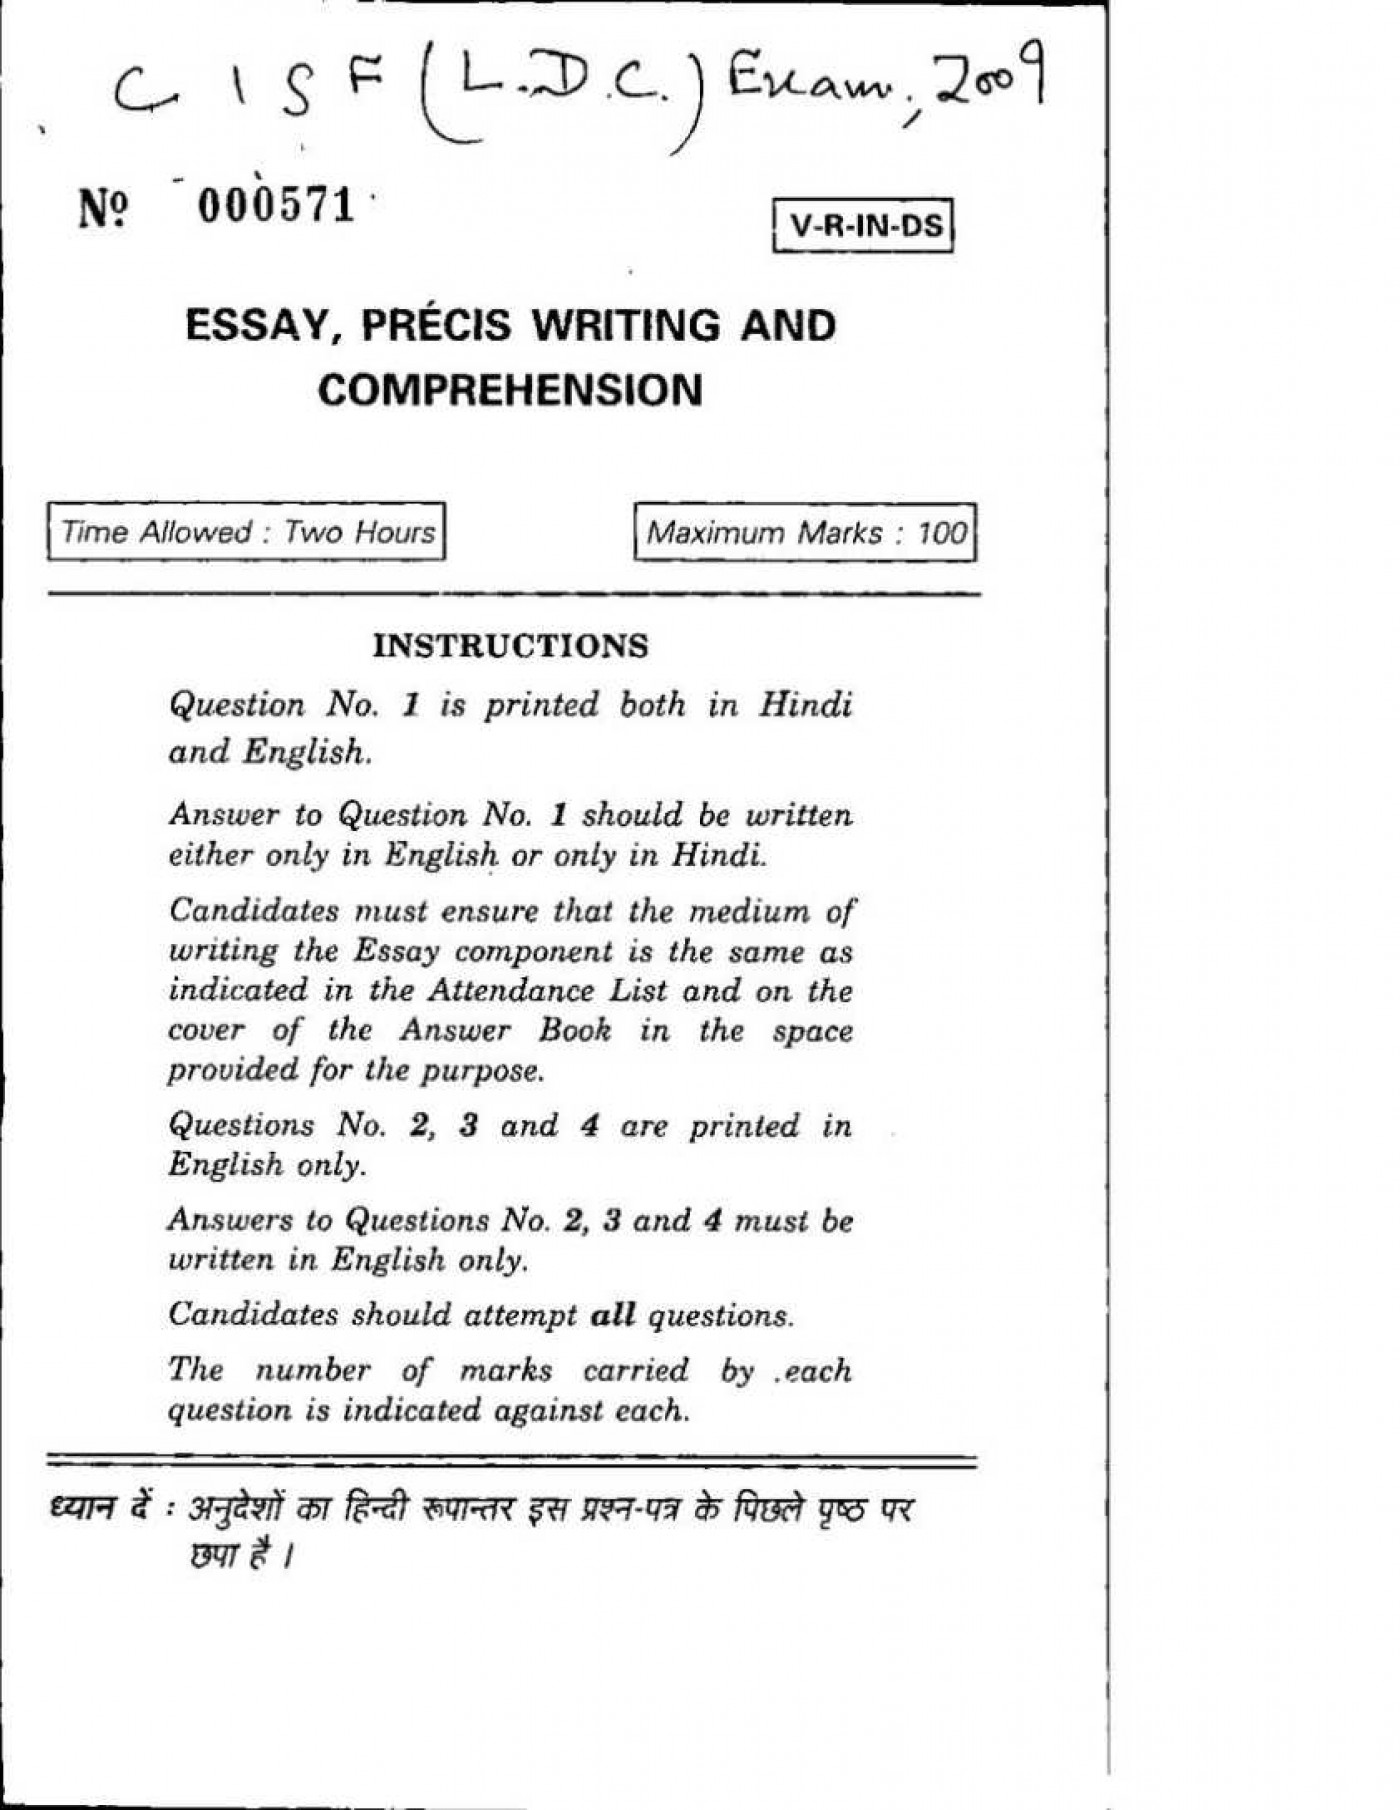 008 Essay Example Upsc Cisf Ltd Departmental Competitive Exam Precis Writing And Comprehension Previous Years Question Papers Stirring Introduction Examples About Yourself Mla Leadership College 1400